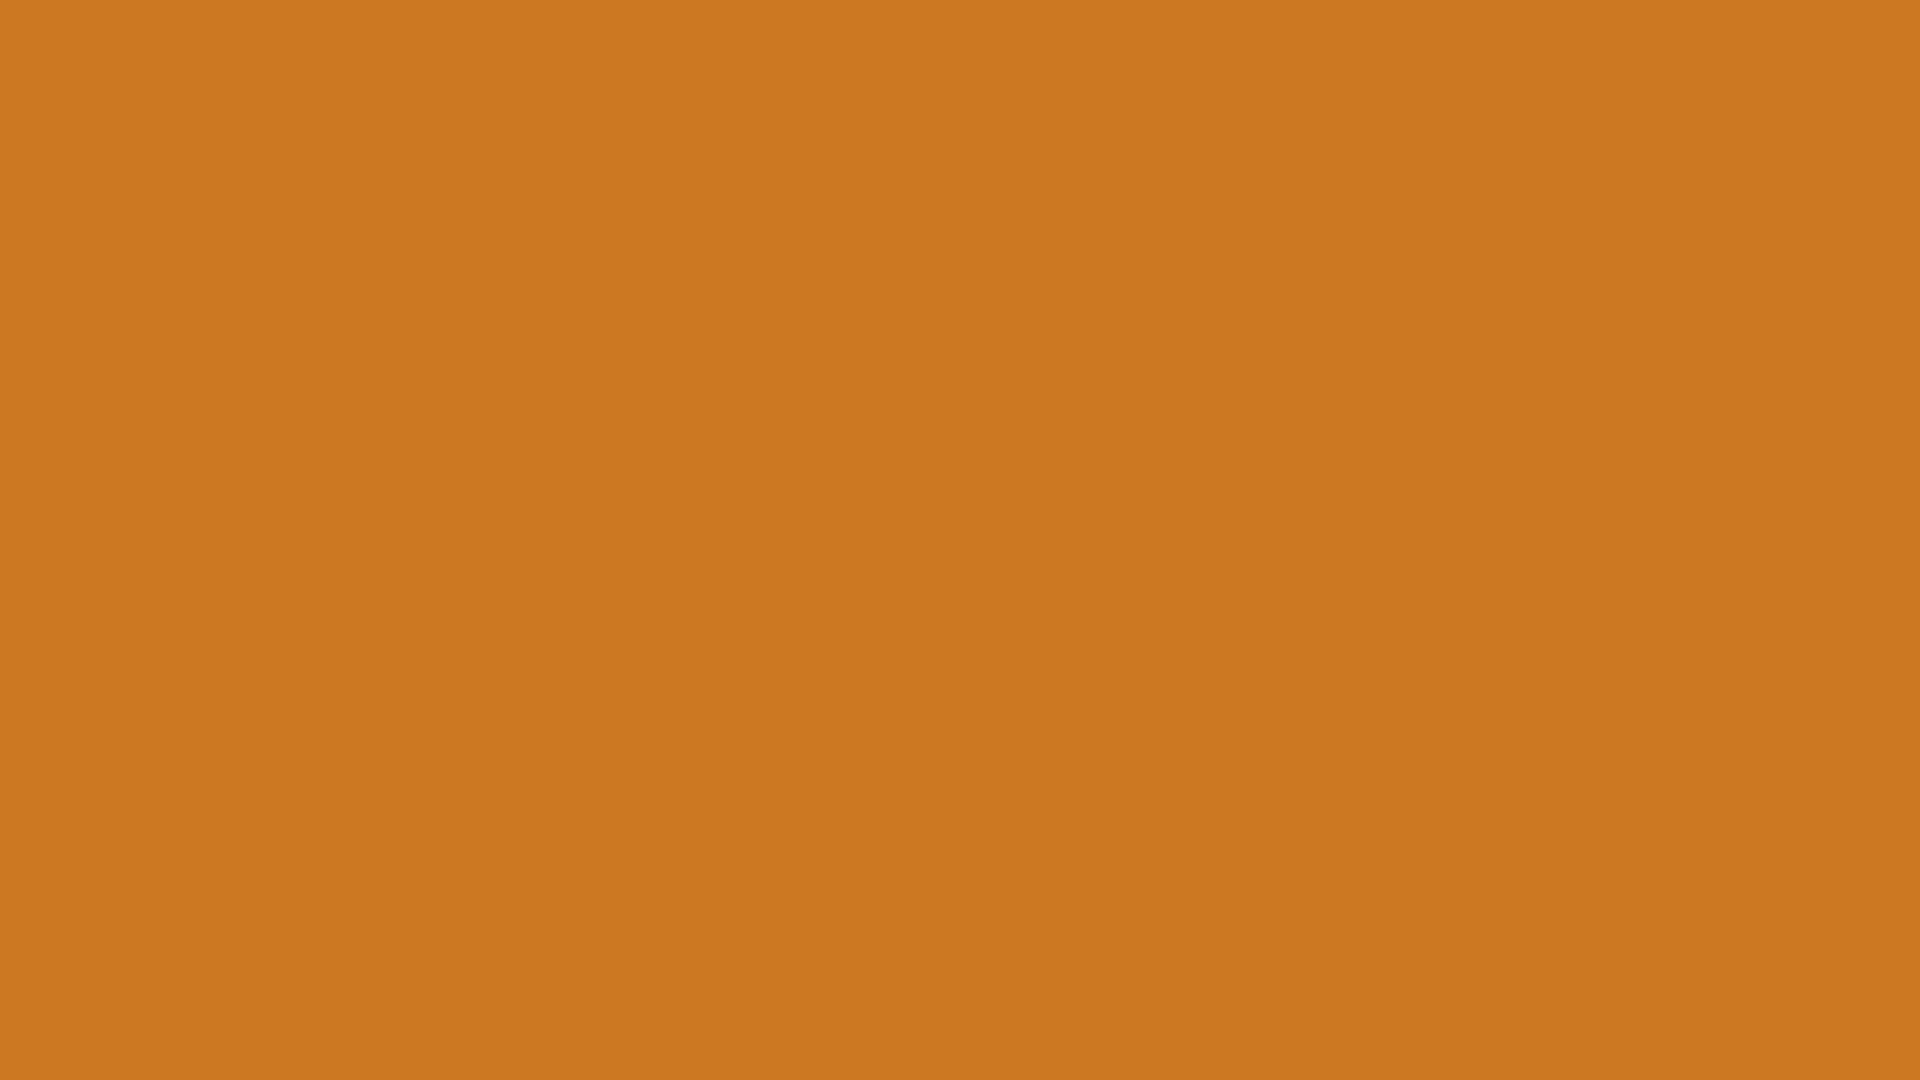 1920x1080 Ochre Solid Color Background